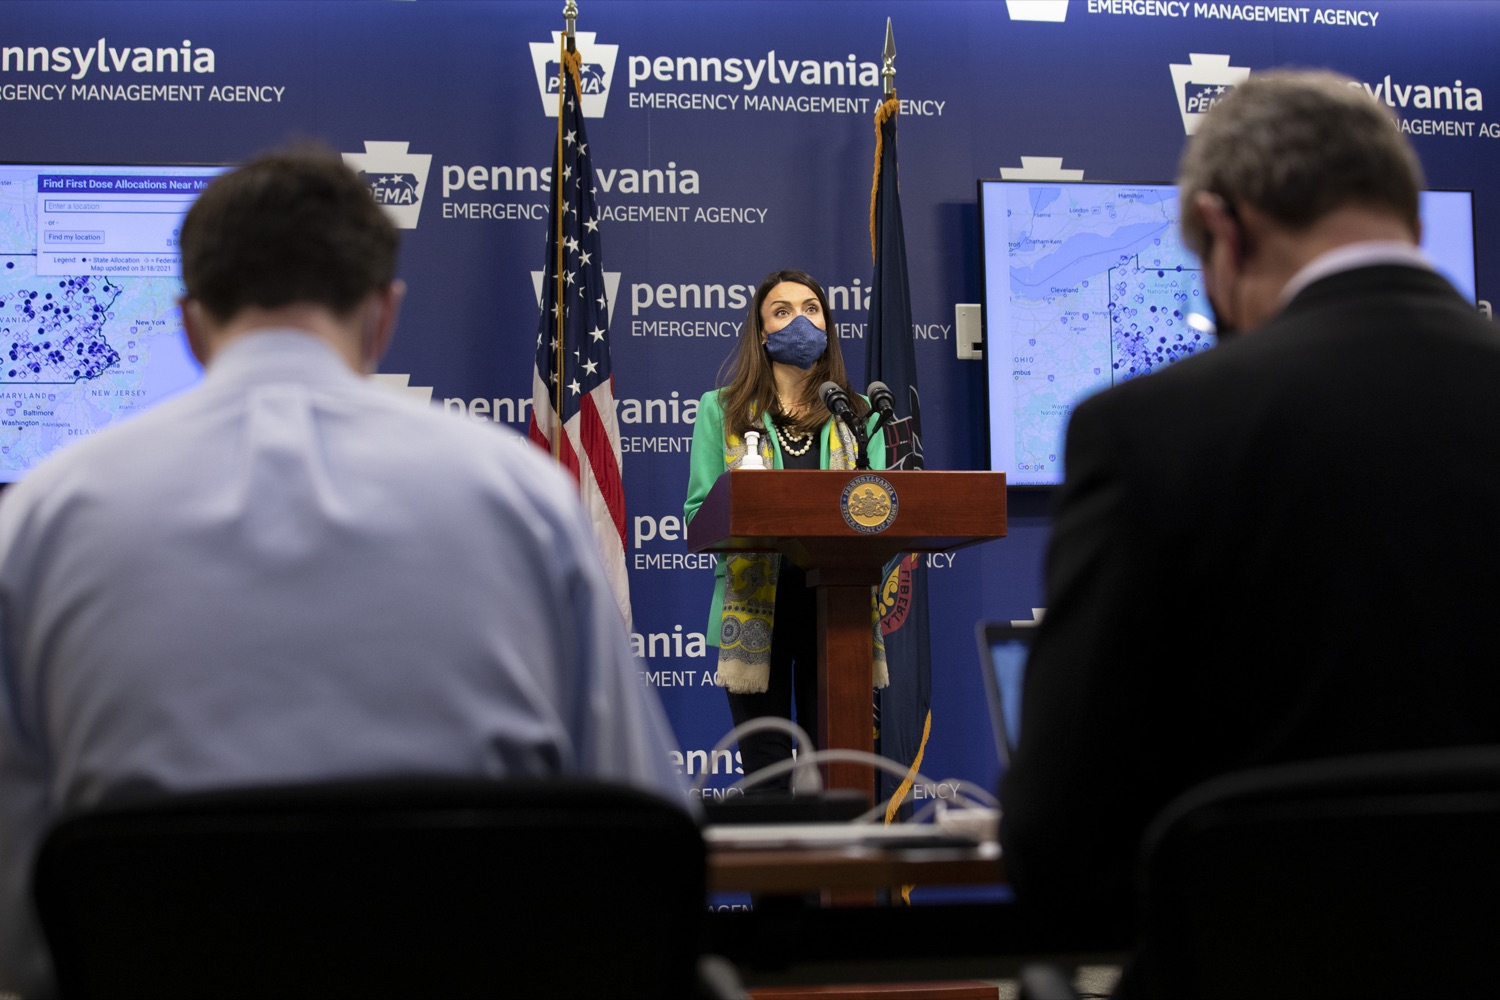 Pa. Acting Health Secretary Alison Beam, center, talks about Pennsylvania's Covid-19 vaccine strategy during a media briefing on Thursday, March 18, 2021. (Source: Pa.gov)